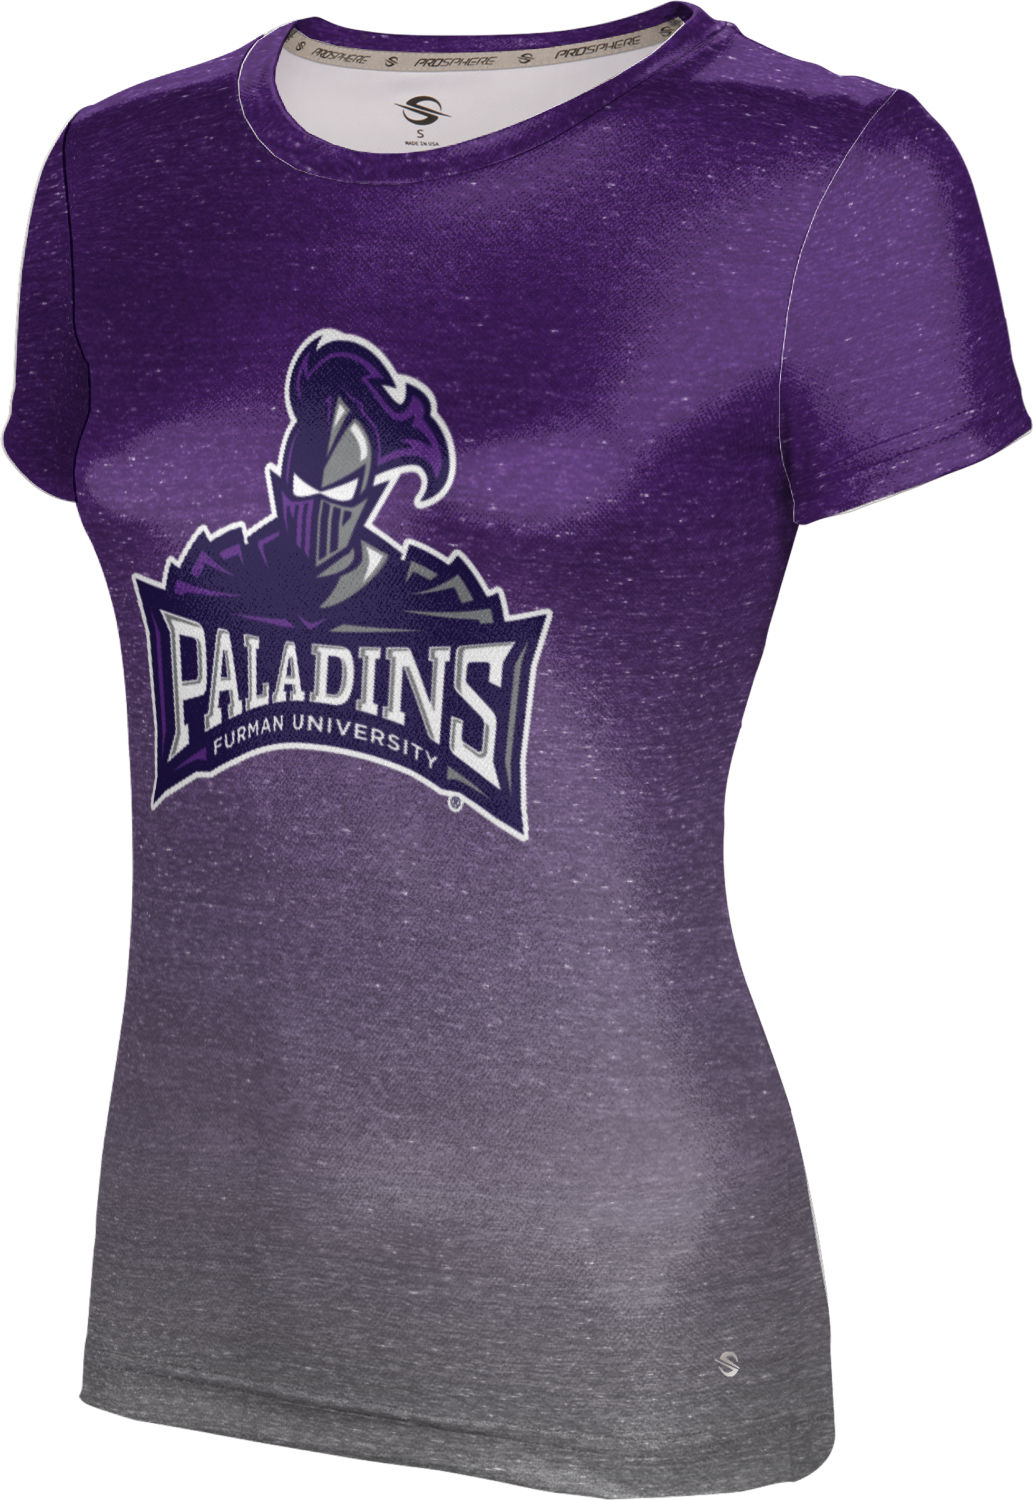 ProSphere Girls' Furman University Ombre Tech Tee